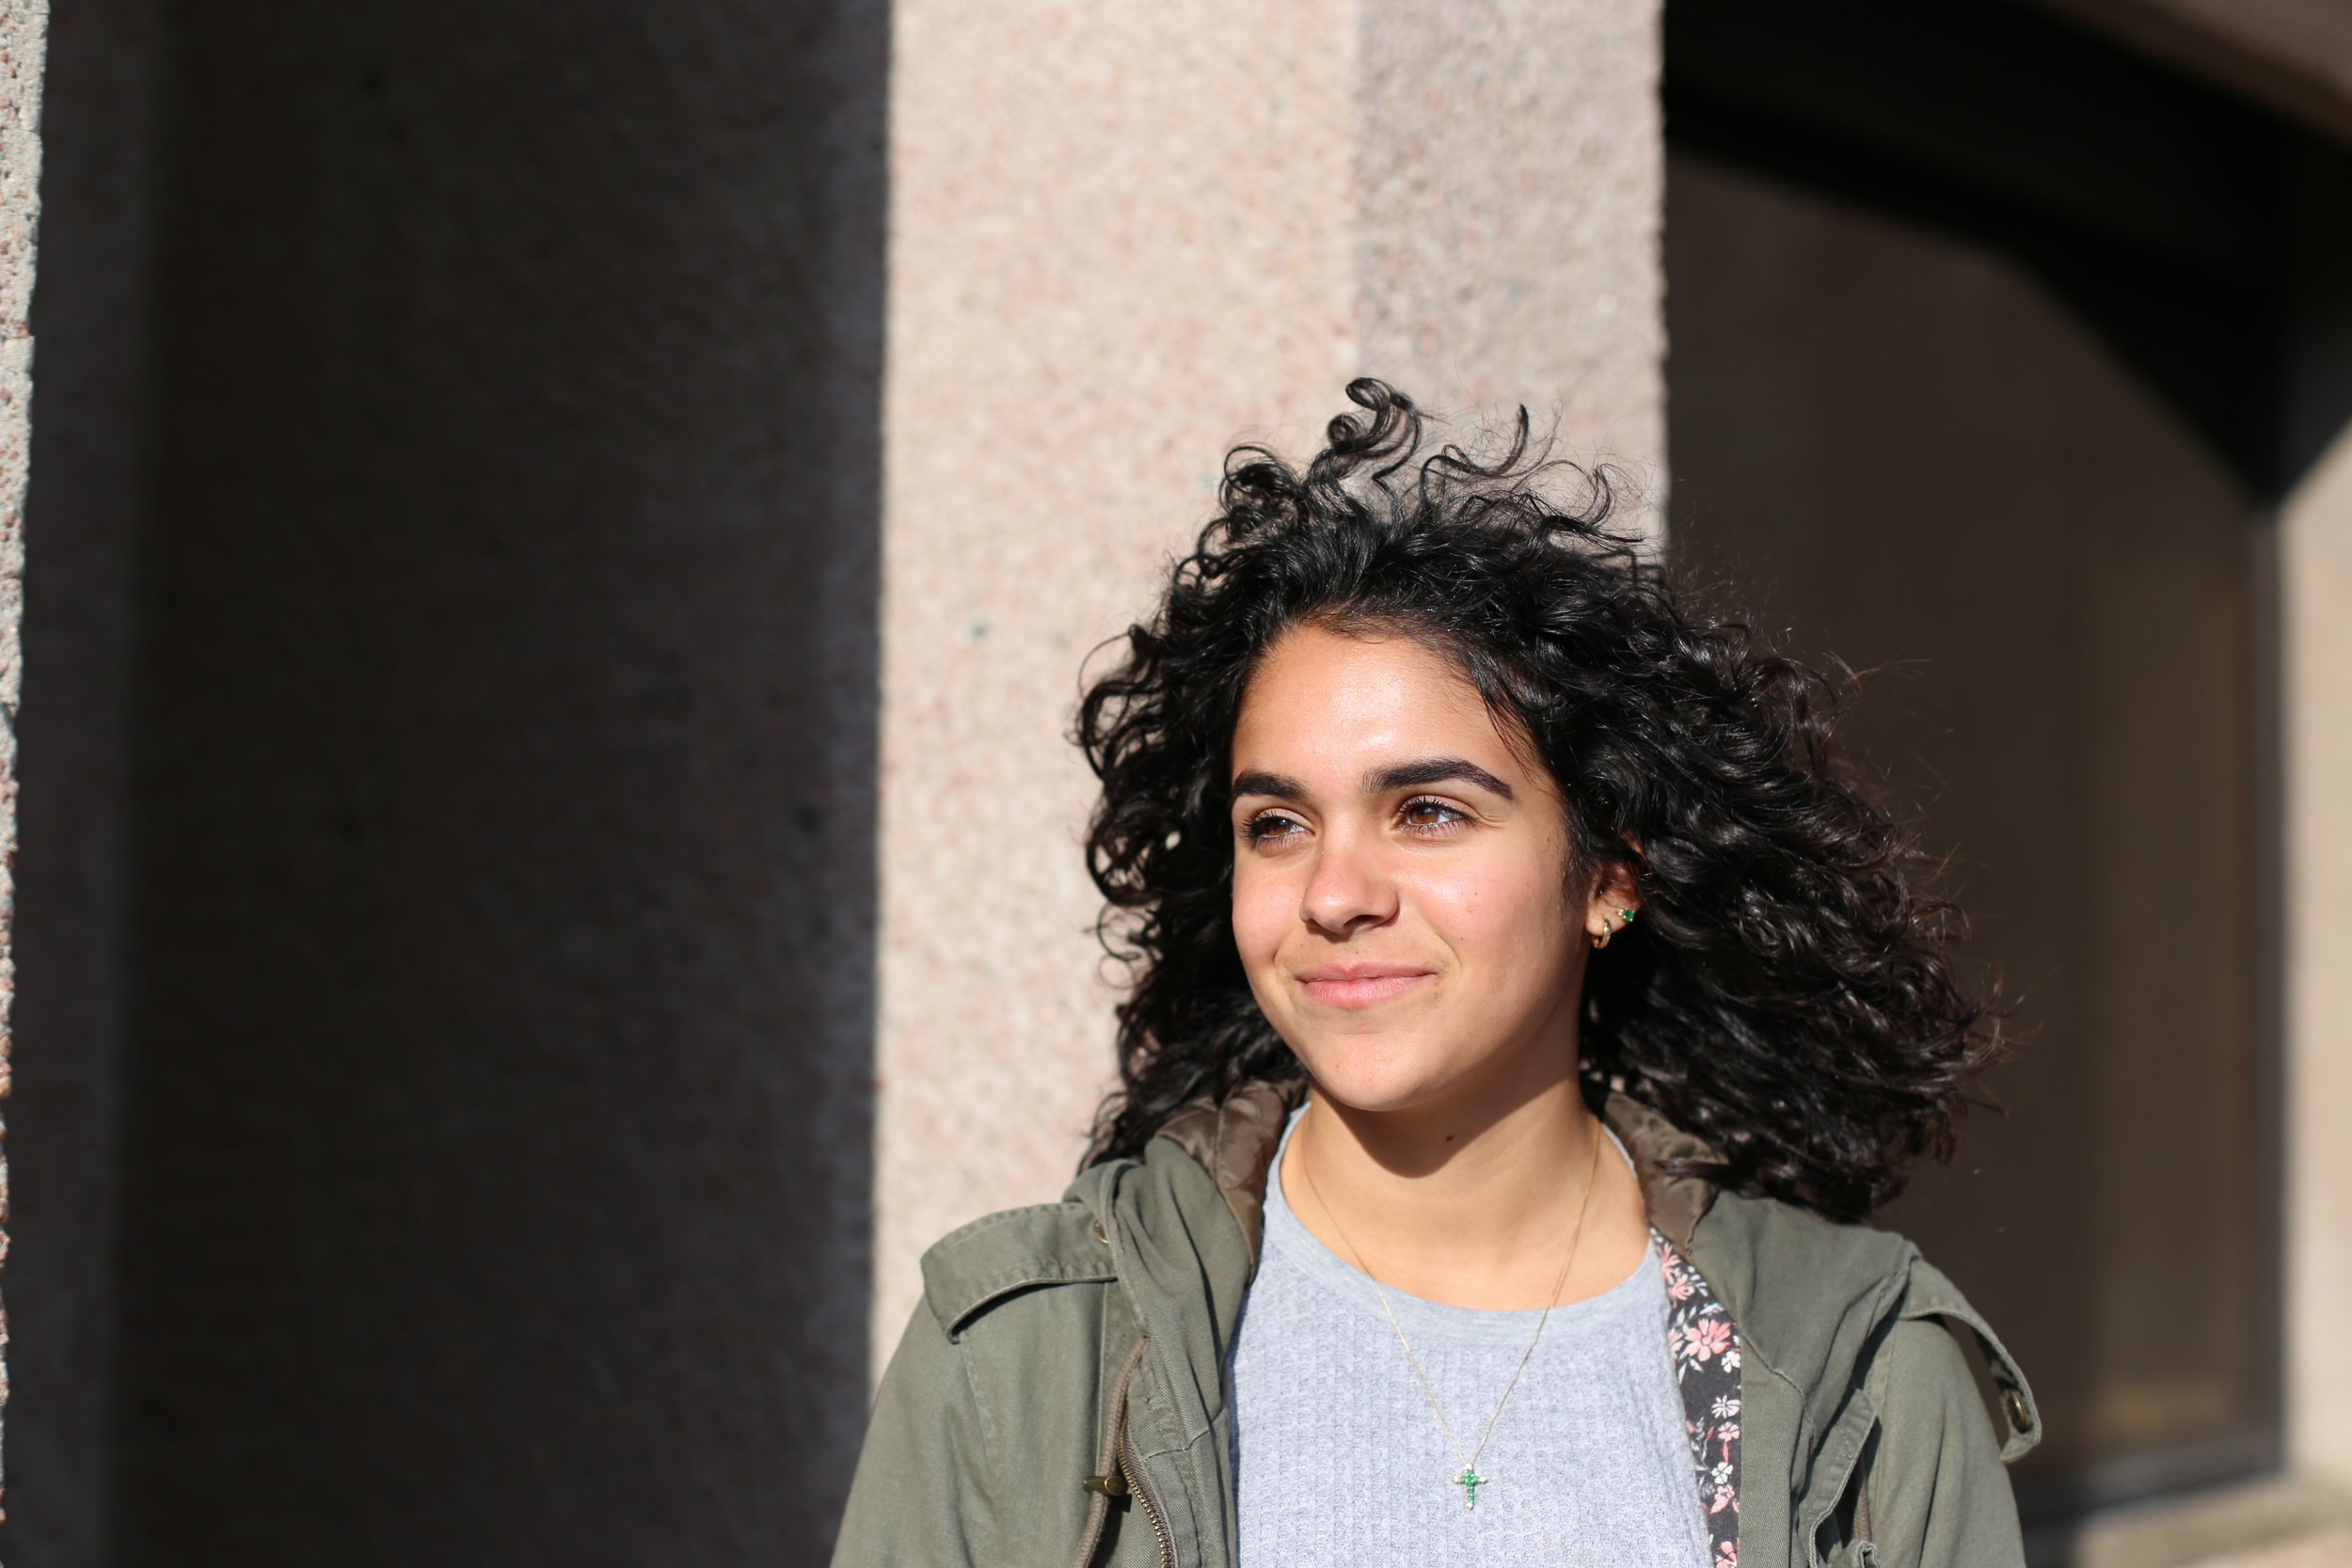 Quintero is a sophomore studying chemistry with an  integrated learning major  in environmental sustainability and policy. She came to Syracuse wanting to do pre-med, but now wants to go into research on climate change and global warming. Photo by  Jiaman (Maggie) Peng .